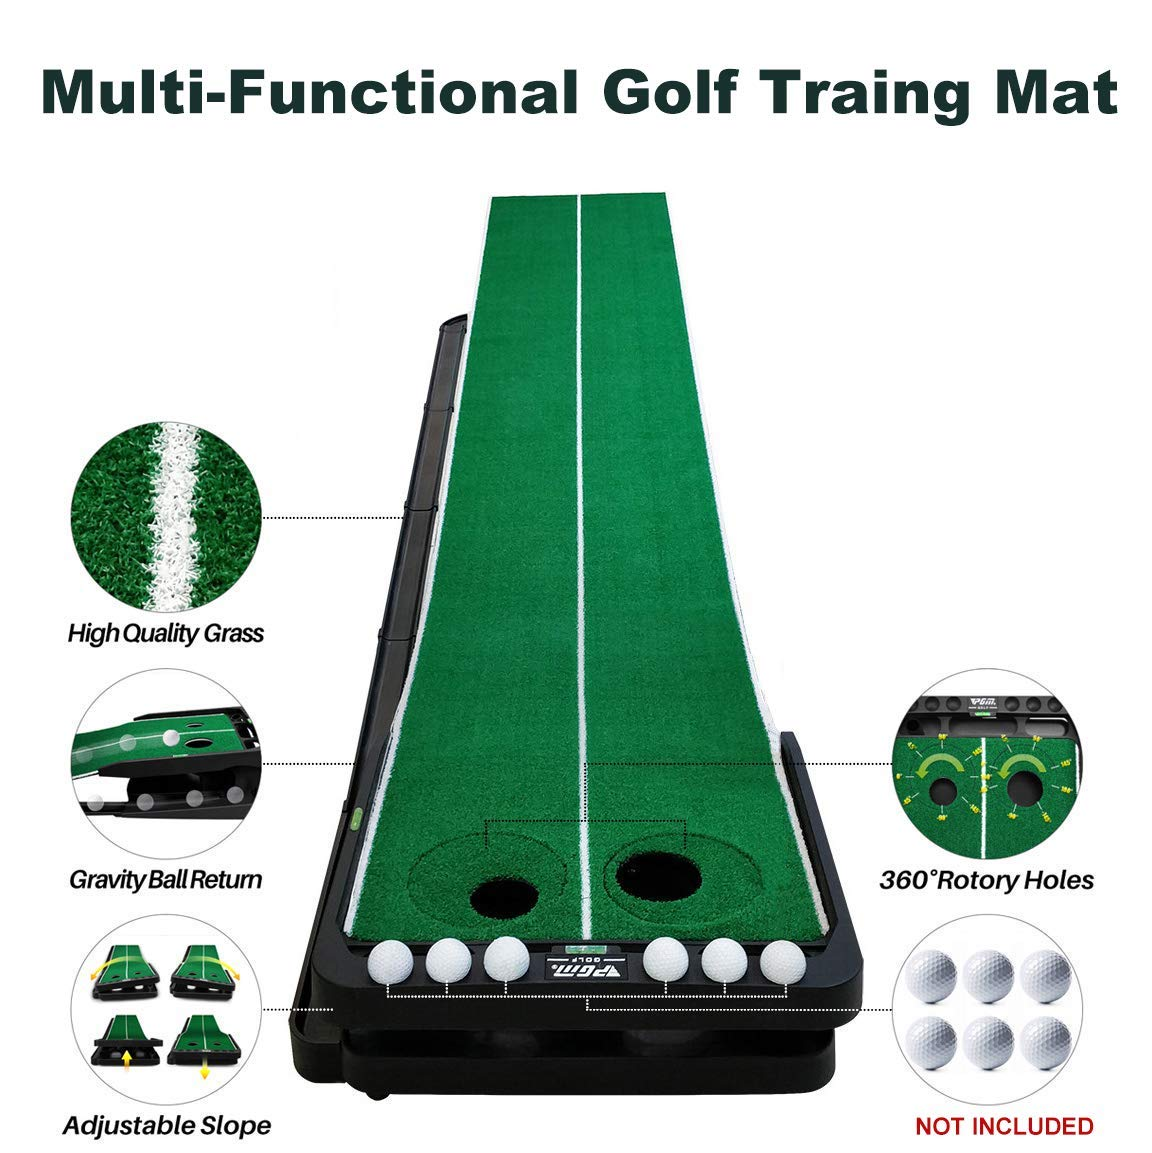 Crestgolf Slope-adjustablity Golf Putting Mat Green Indoor Outdoor Auto Ball Return Professional Portable Putting Trainer Set Mini Training Aids for Home Use - Extra Long 9.84 Feet by Crestgolf